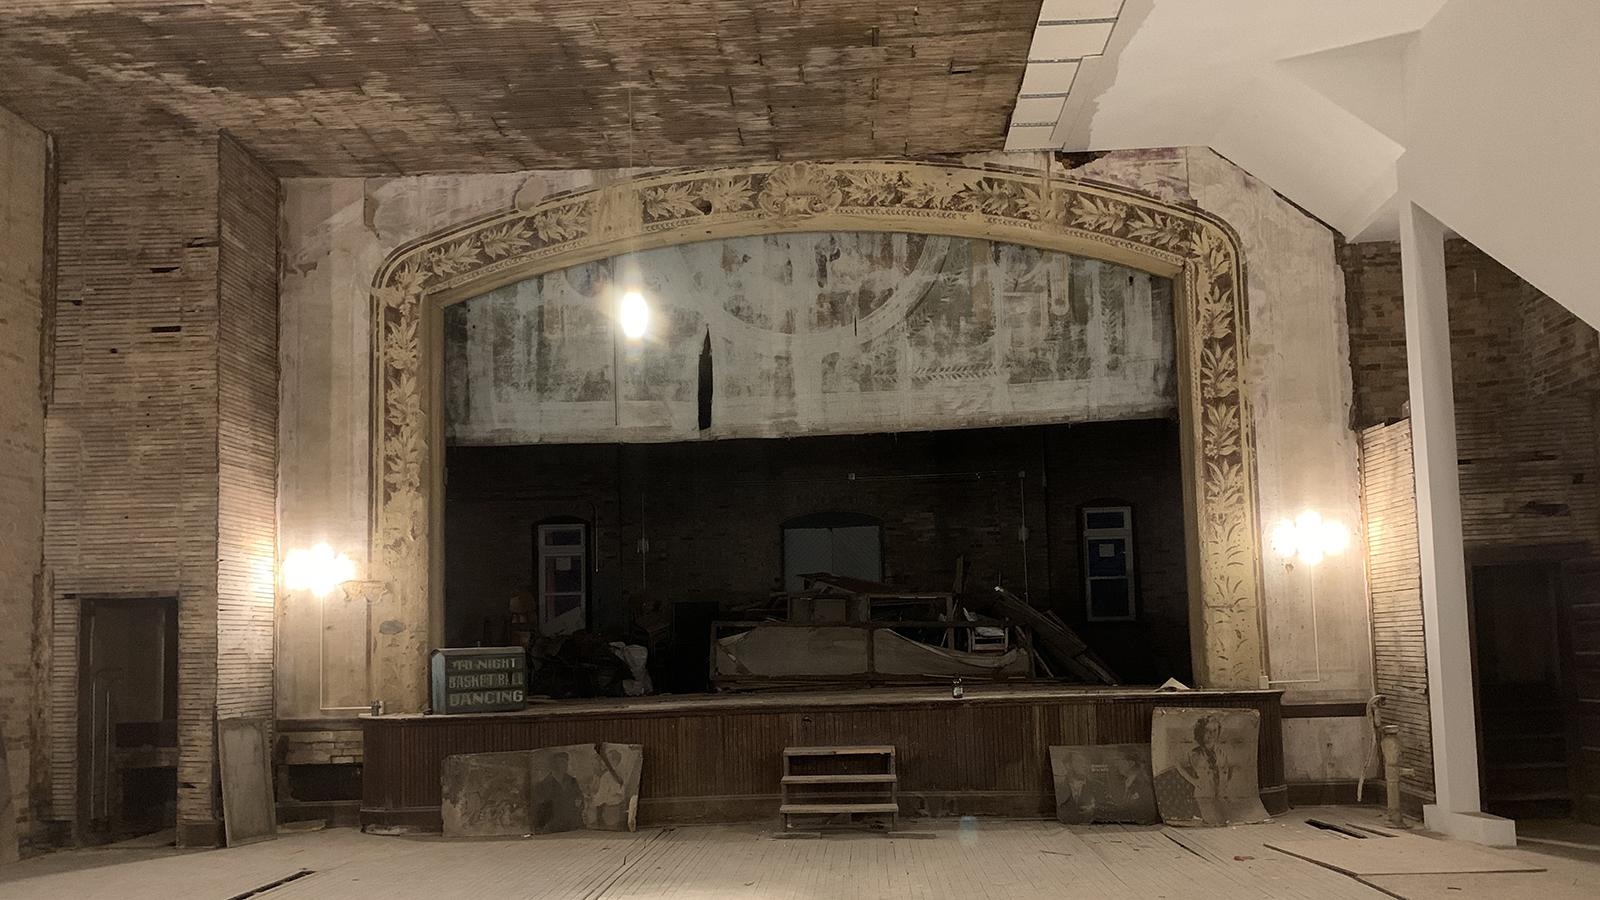 The main stage in process of renovation of the Tecumseh Theater in Shawnee, Ohio.